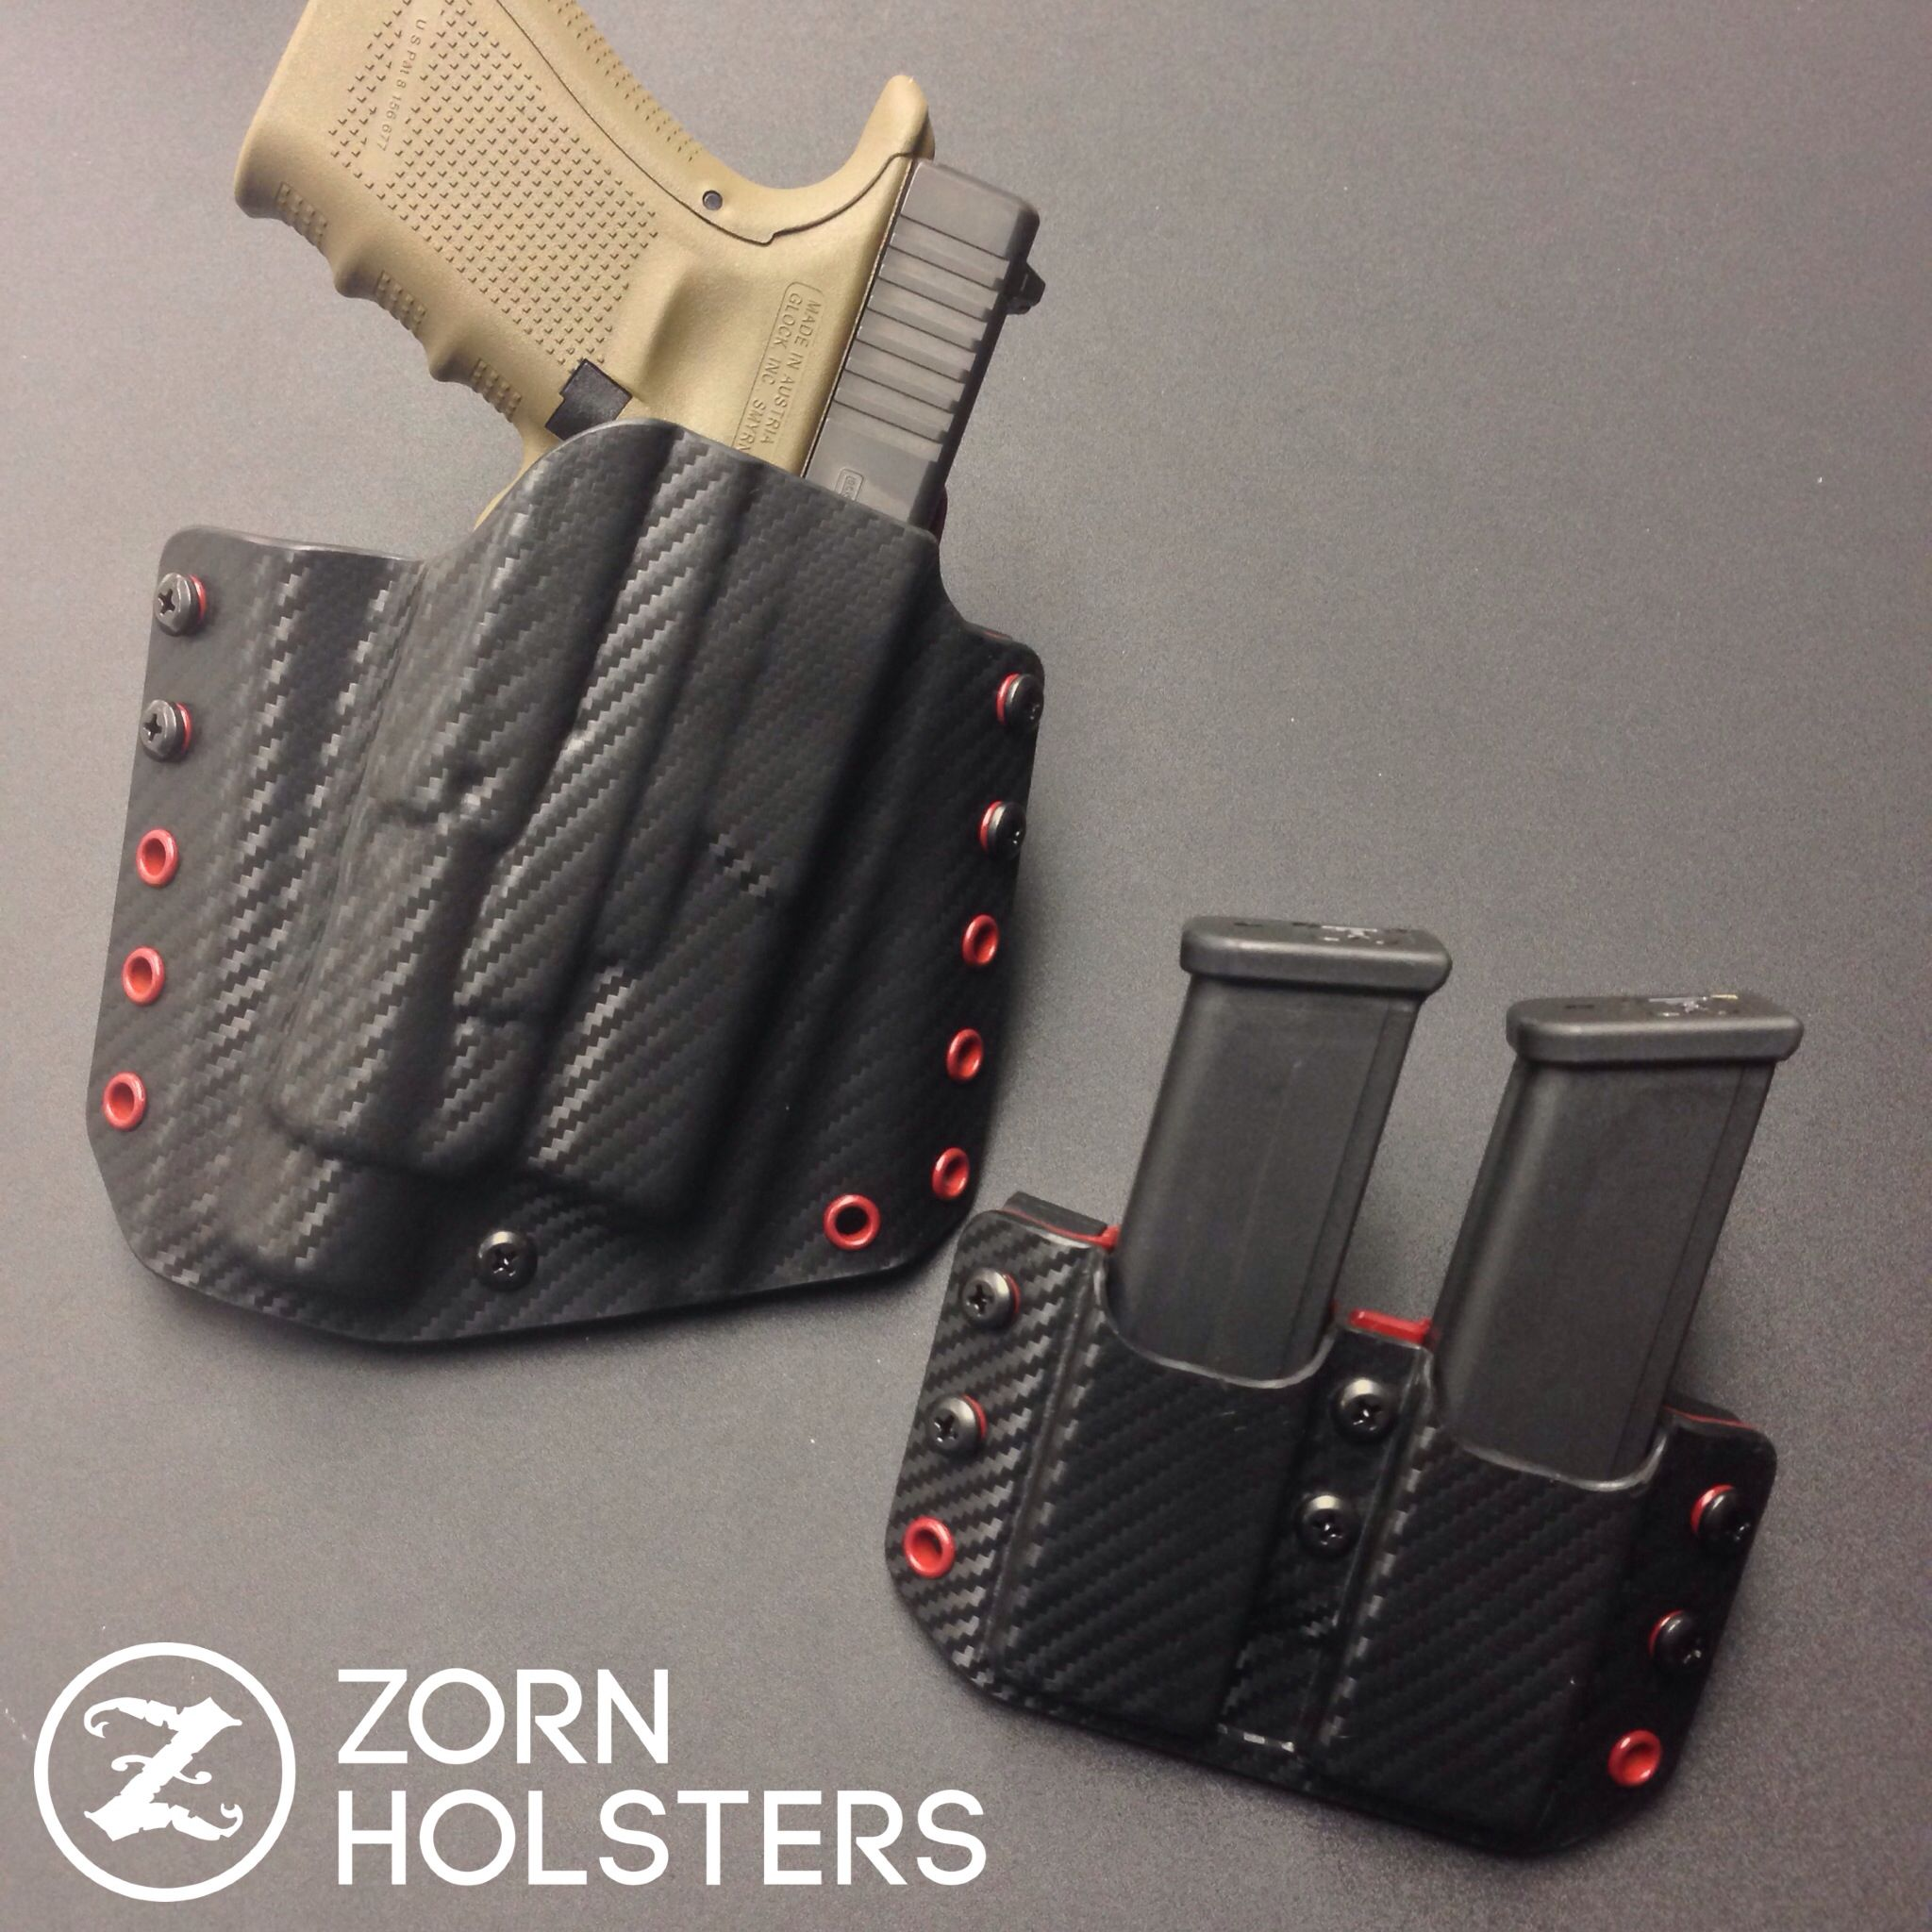 Trojan Holster and double magazine pouch for the Glock 23